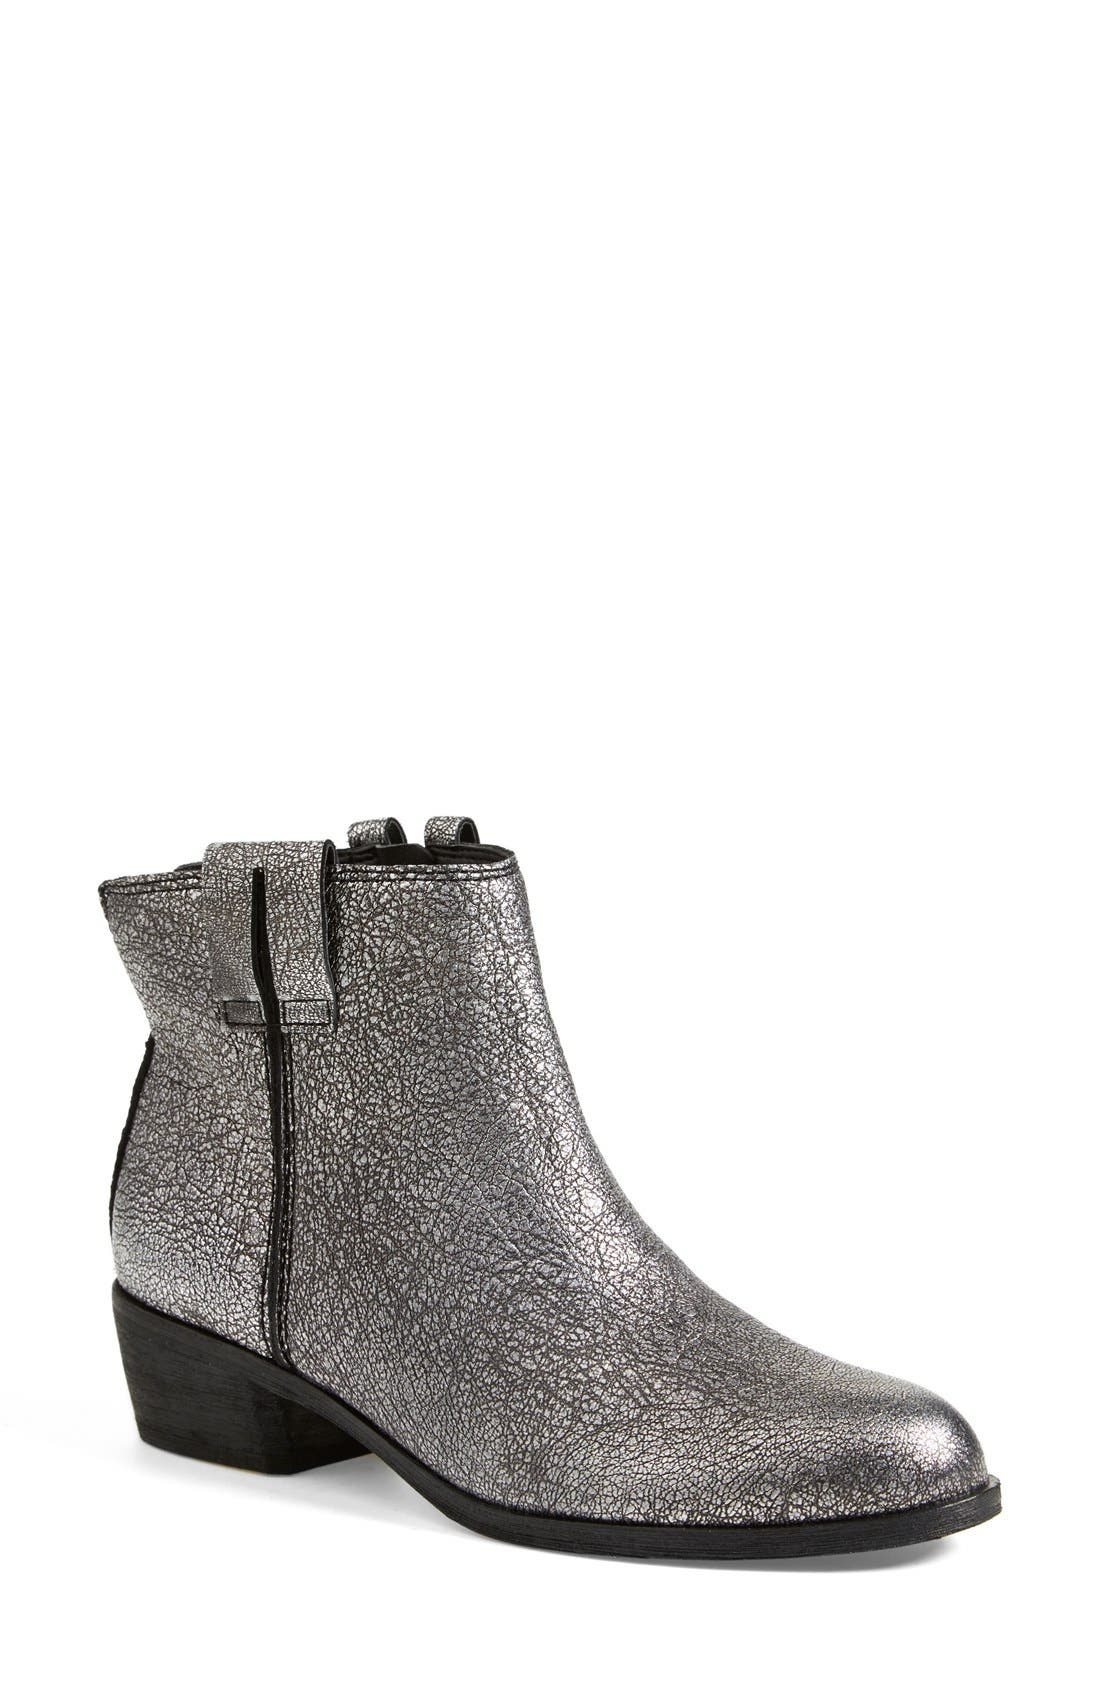 'James' Round Toe Bootie,                             Main thumbnail 1, color,                             Argento Silver